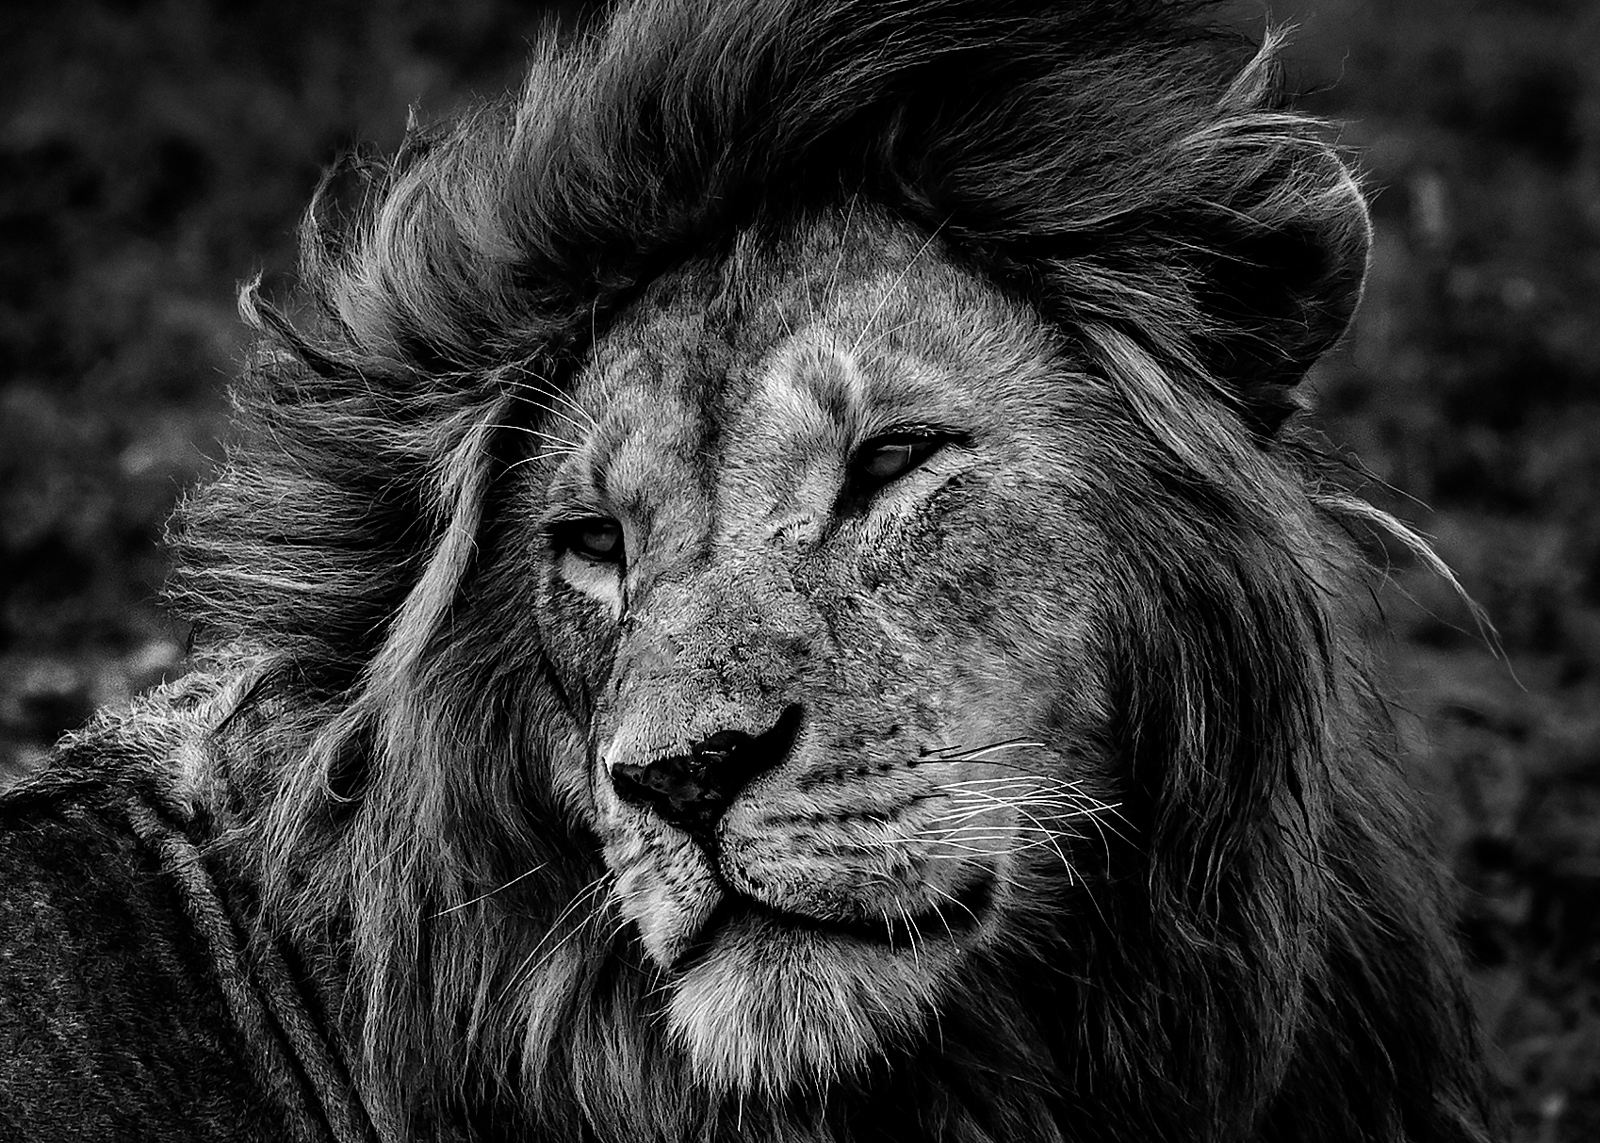 Black and white image of a lion in Tanzania